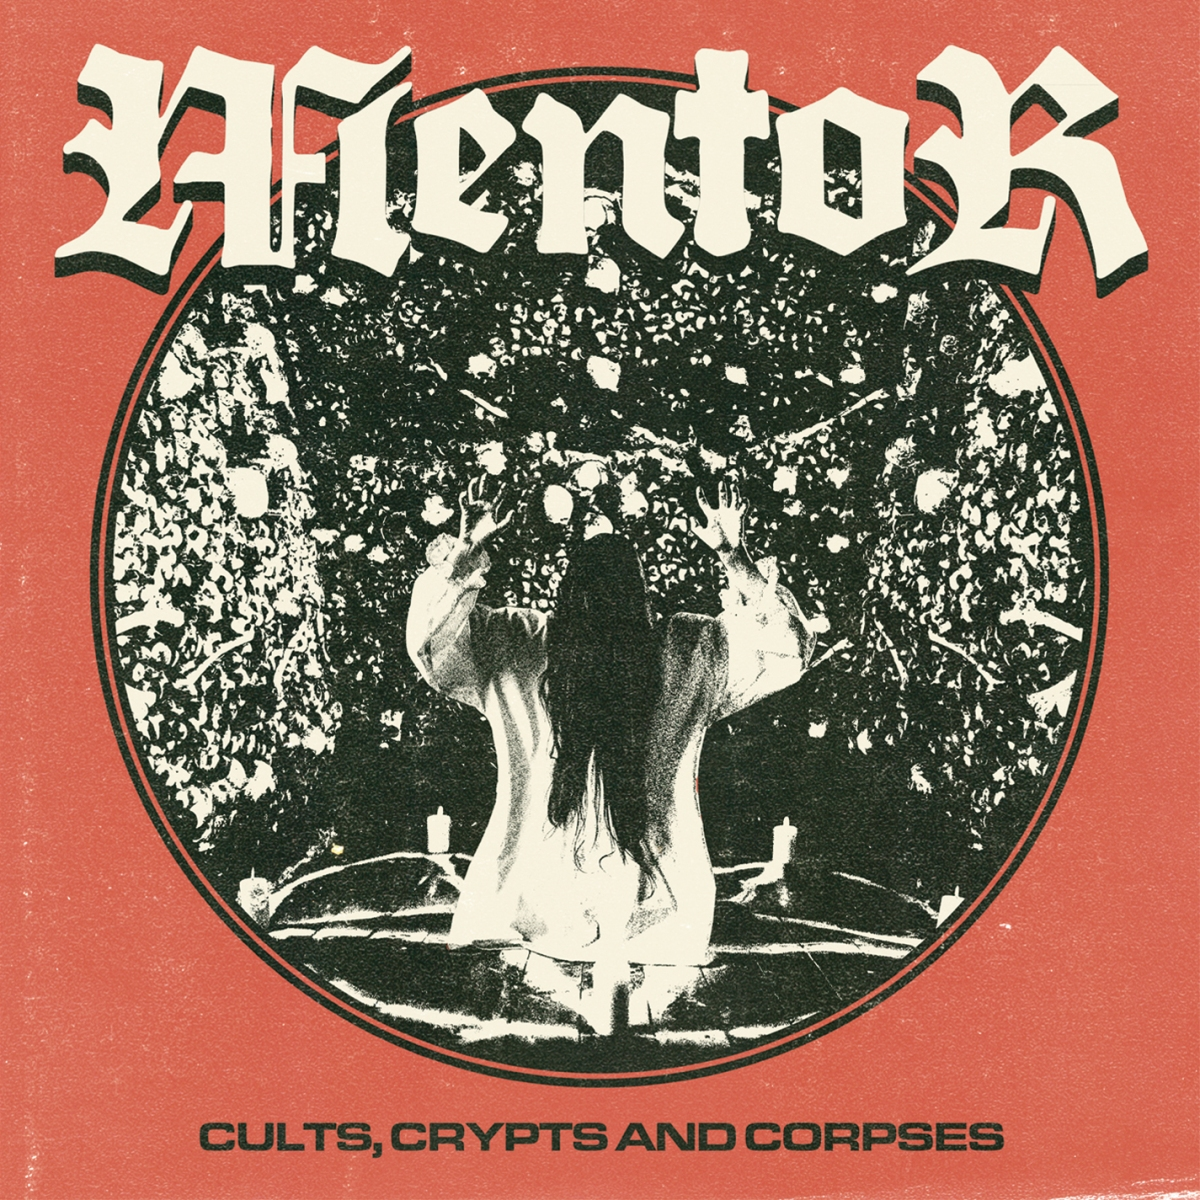 Album Review: Cults, Crypts and Corpses - Mentor